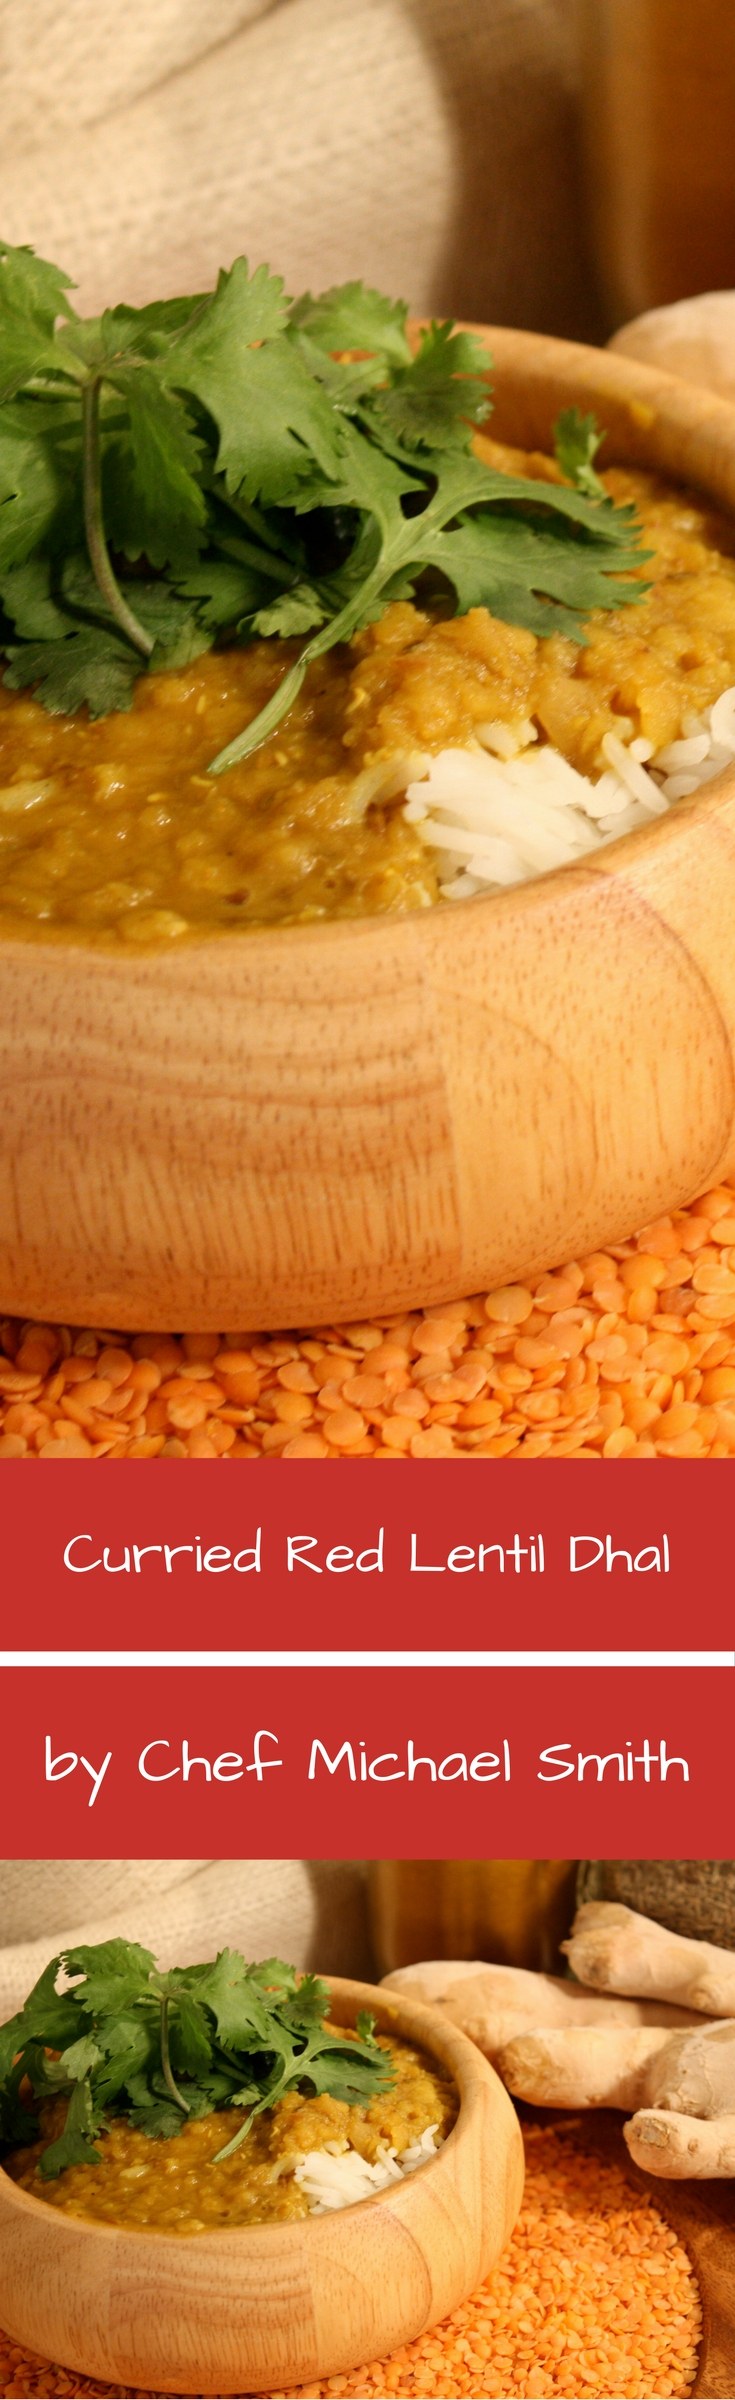 Curried Rice And Red Lentils Recipe — Dishmaps